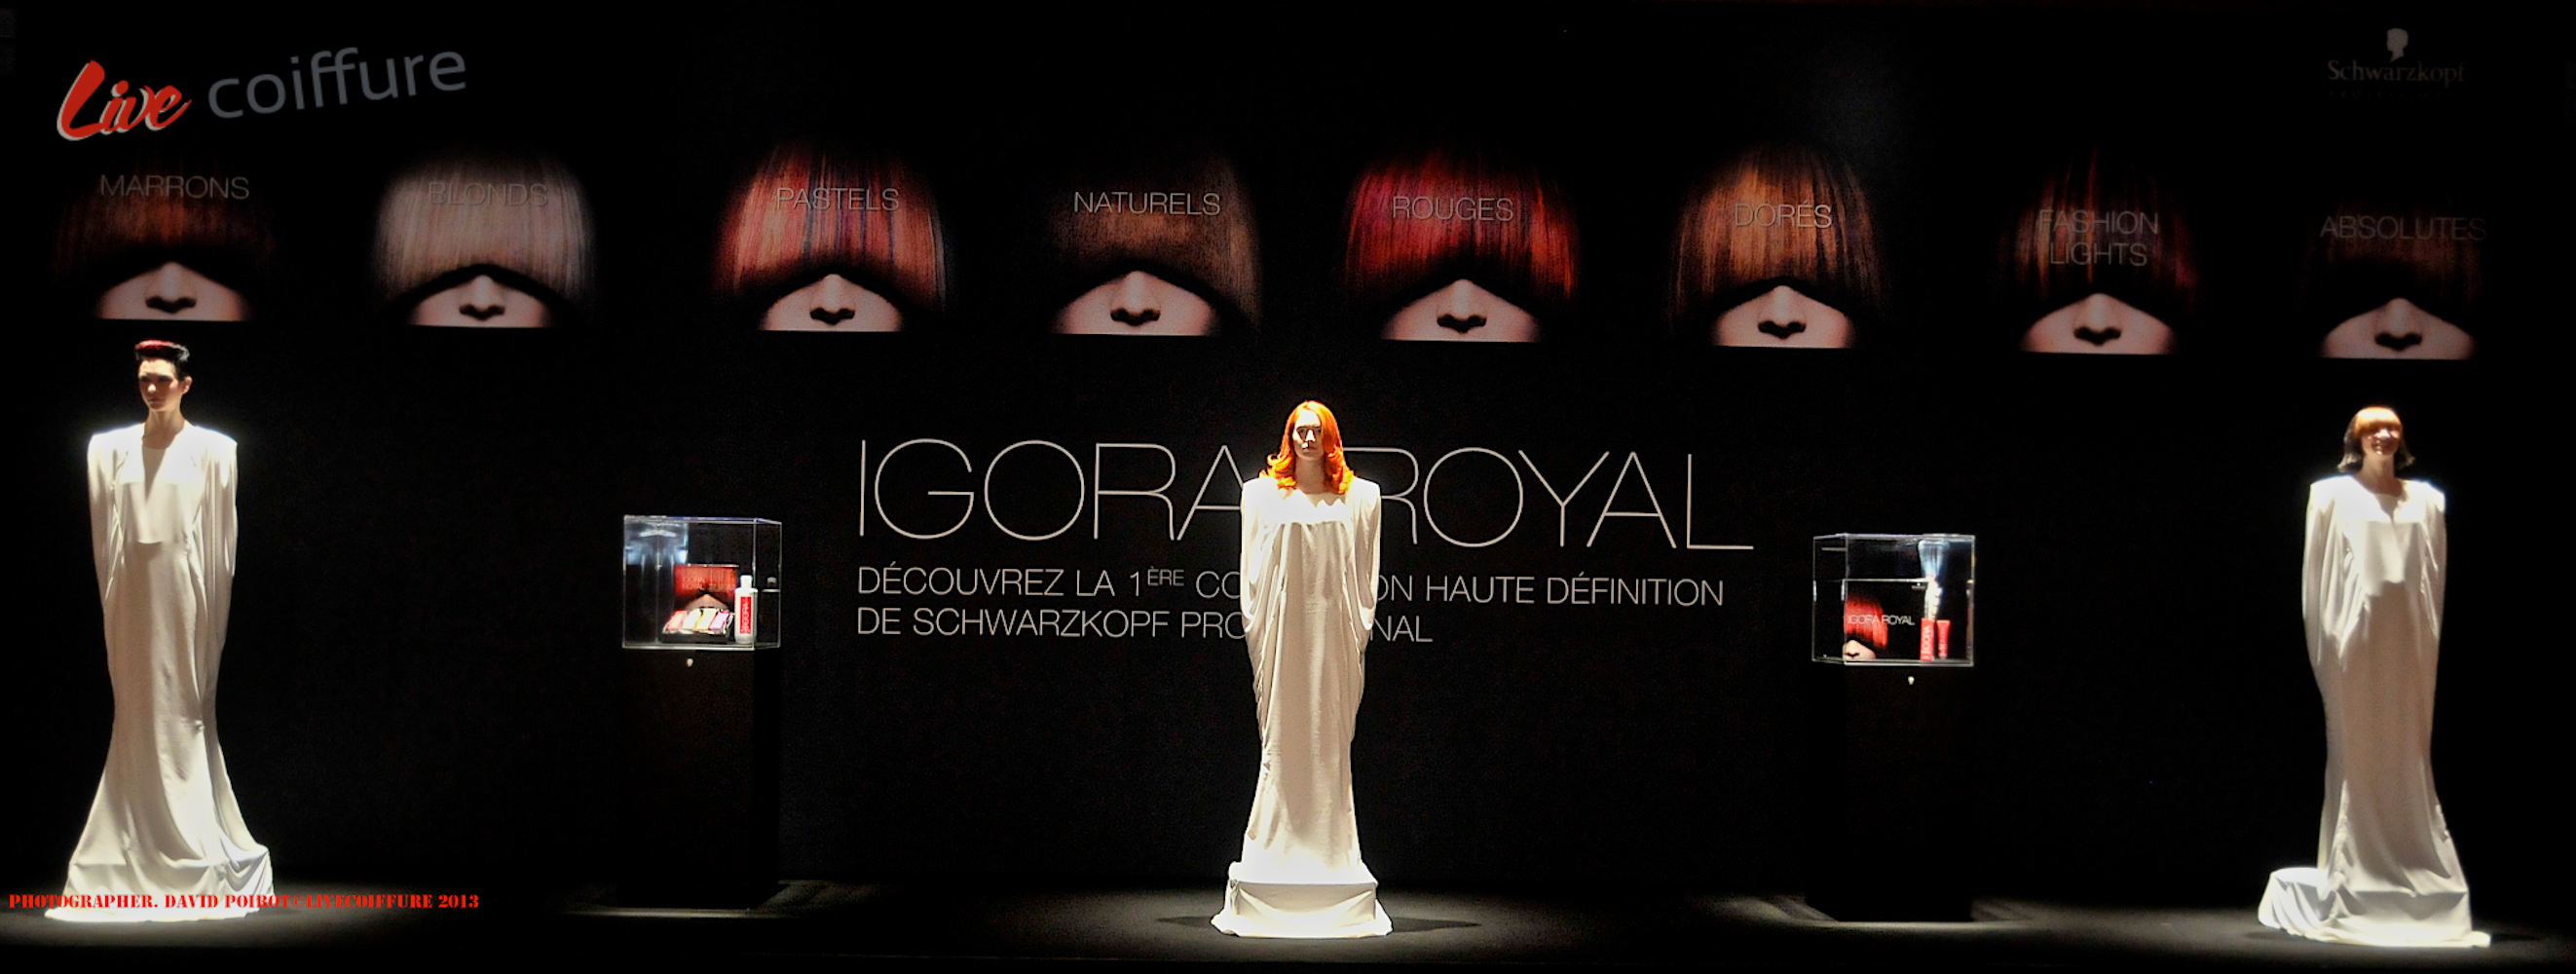 discover in pictures igora royal during the evening hairdressing awards - Coloration Igora Royal